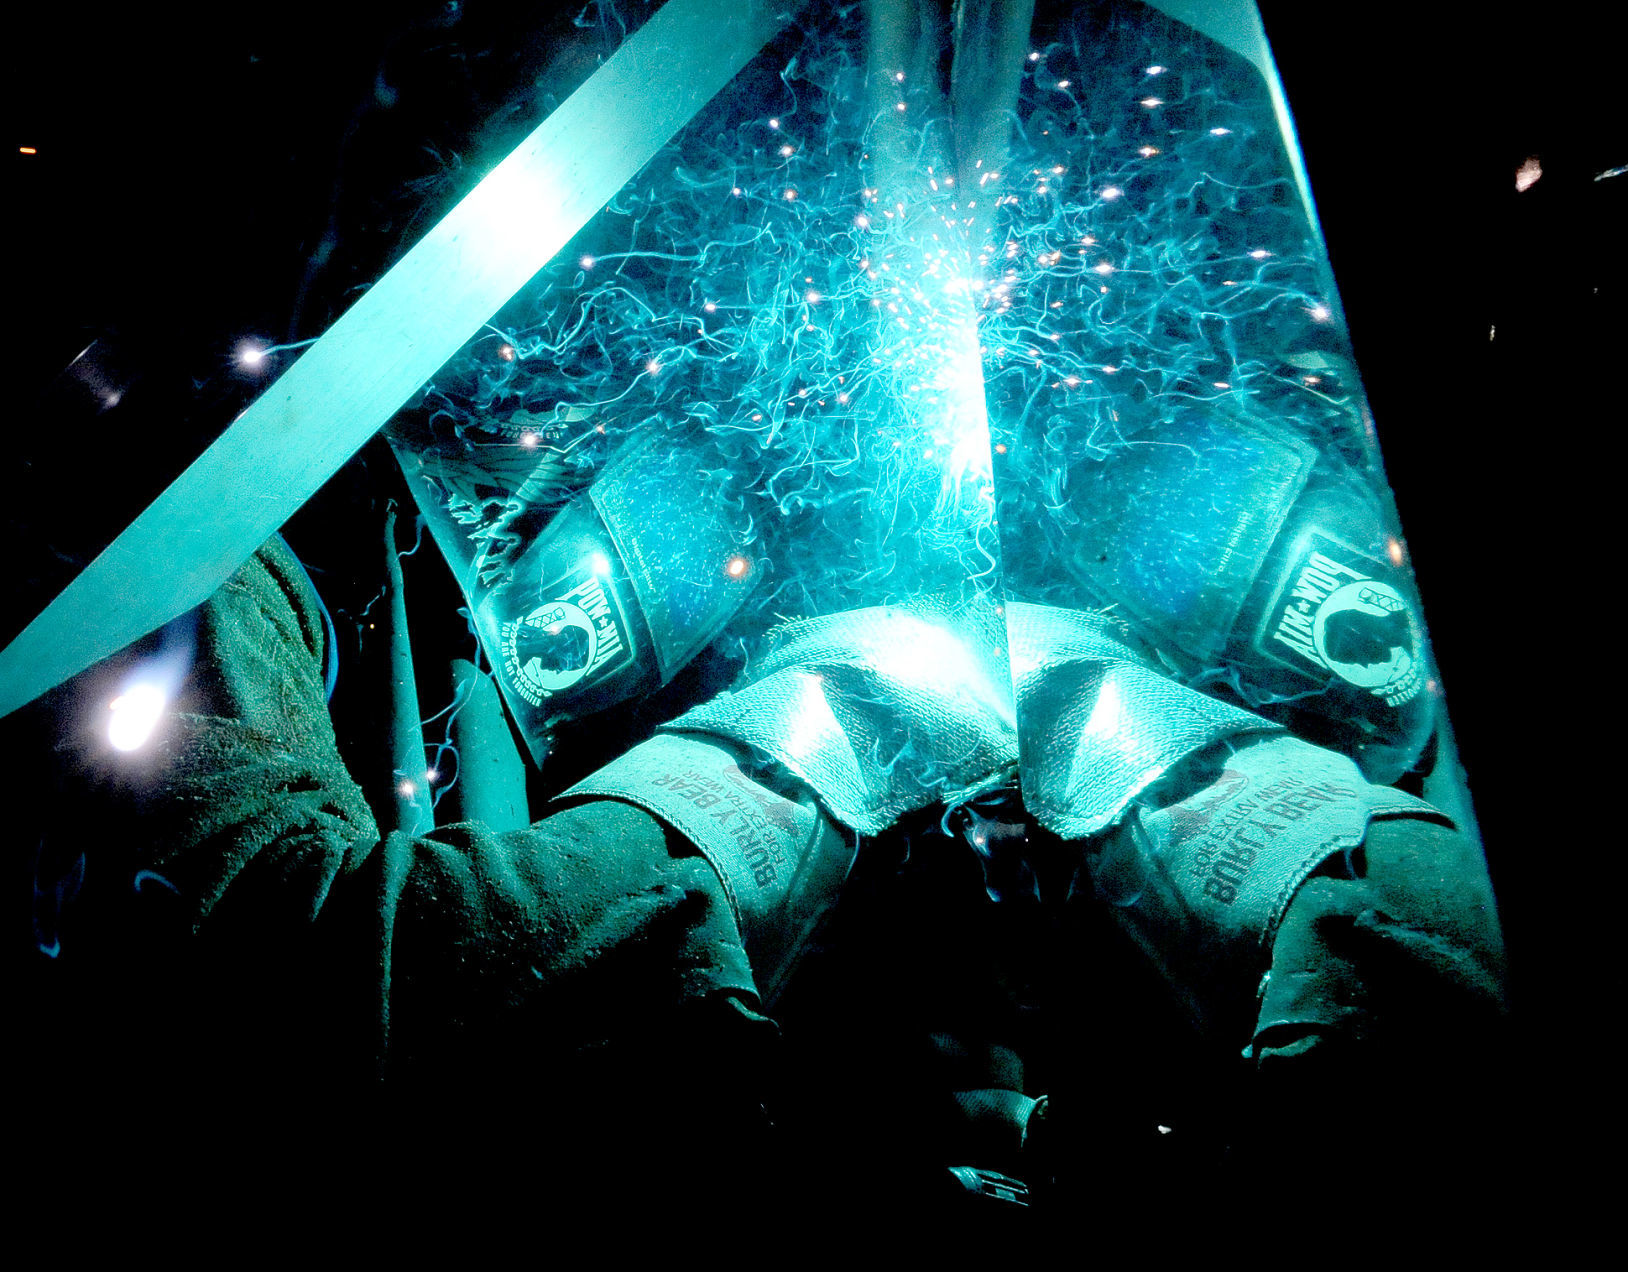 Welder Help Wanted Skilled labor pains